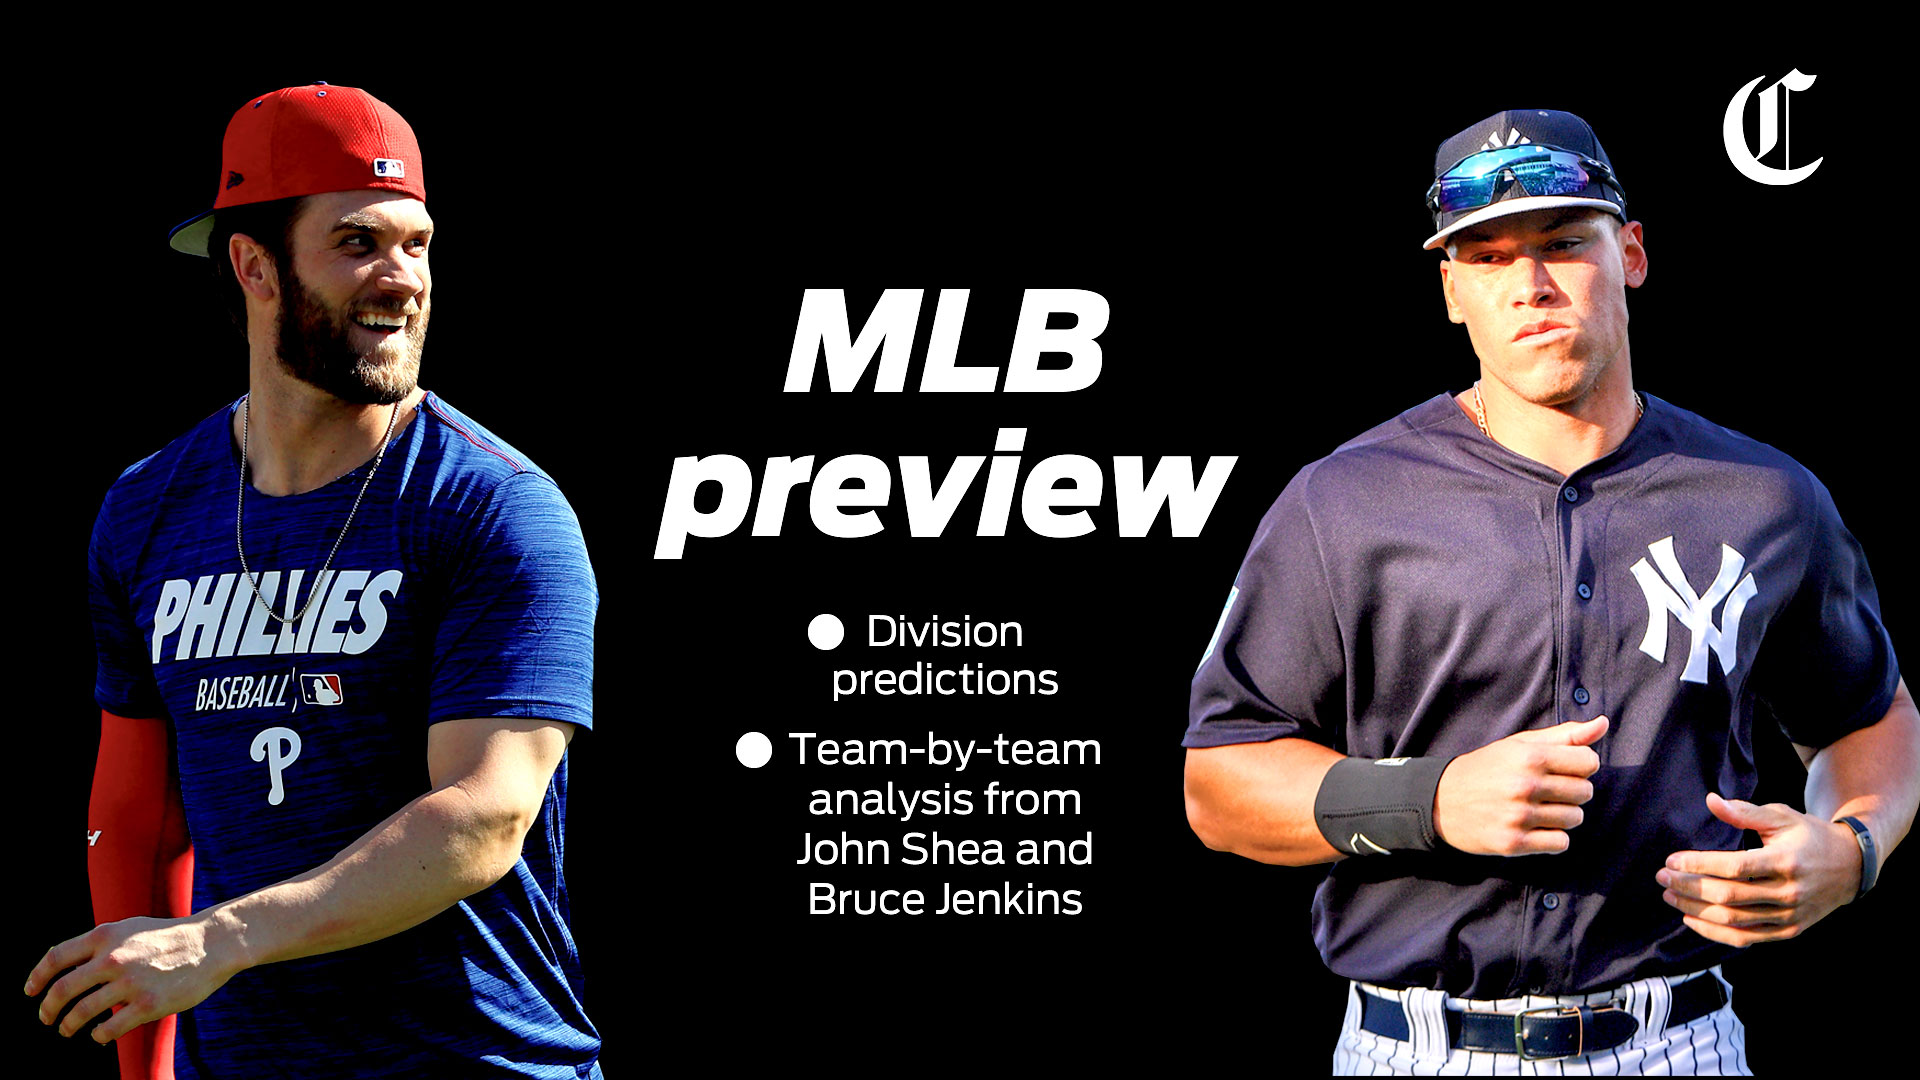 Chronicle s 2019 MLB analysis and predictions  Where will Giants ... 3f72c9f7a9d1